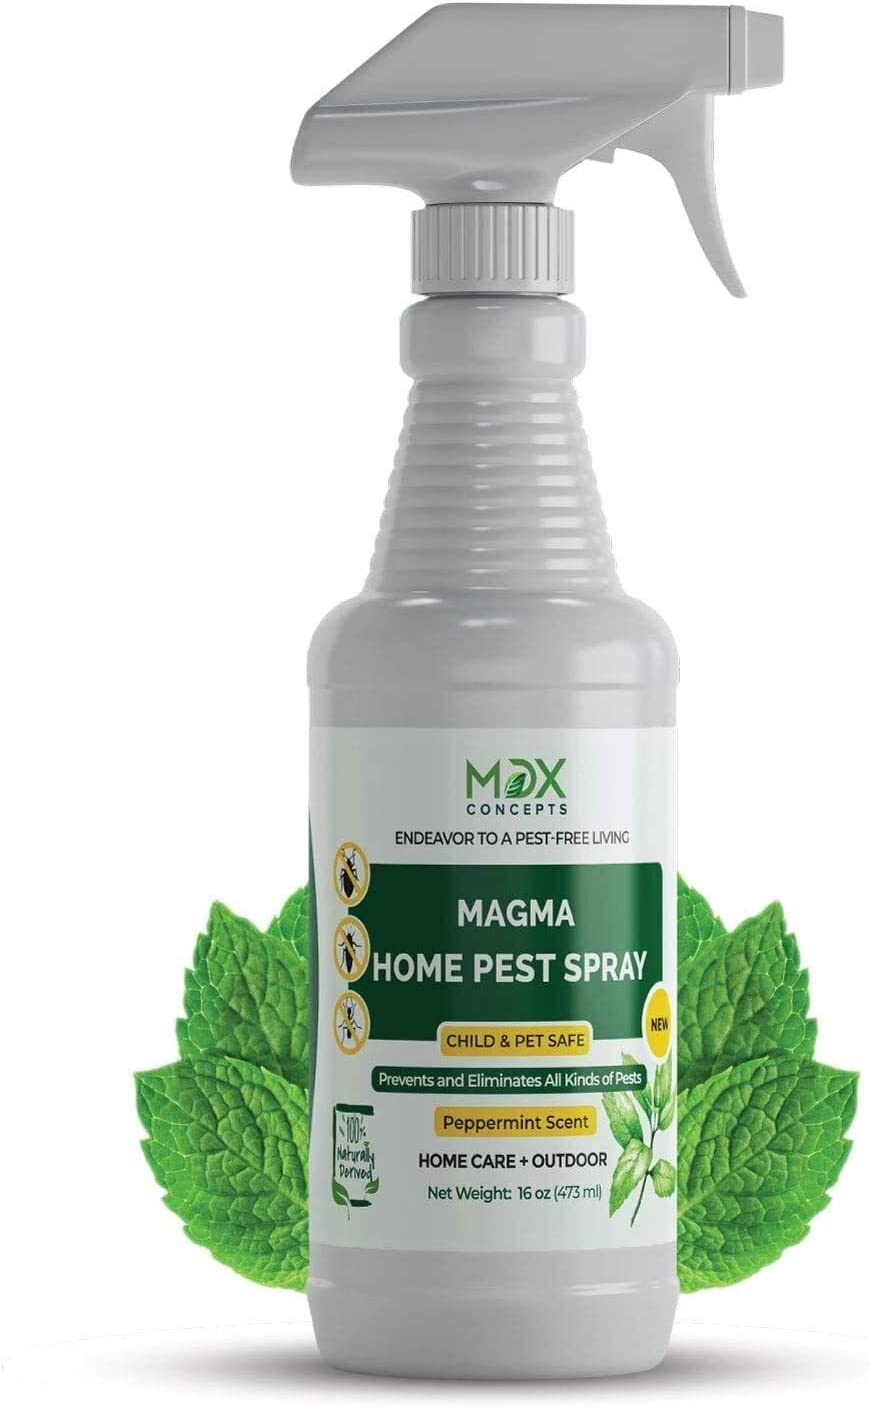 Dog Safe Ant Killers - Exterminate Ants while Your Dog is Completely Protected! 5